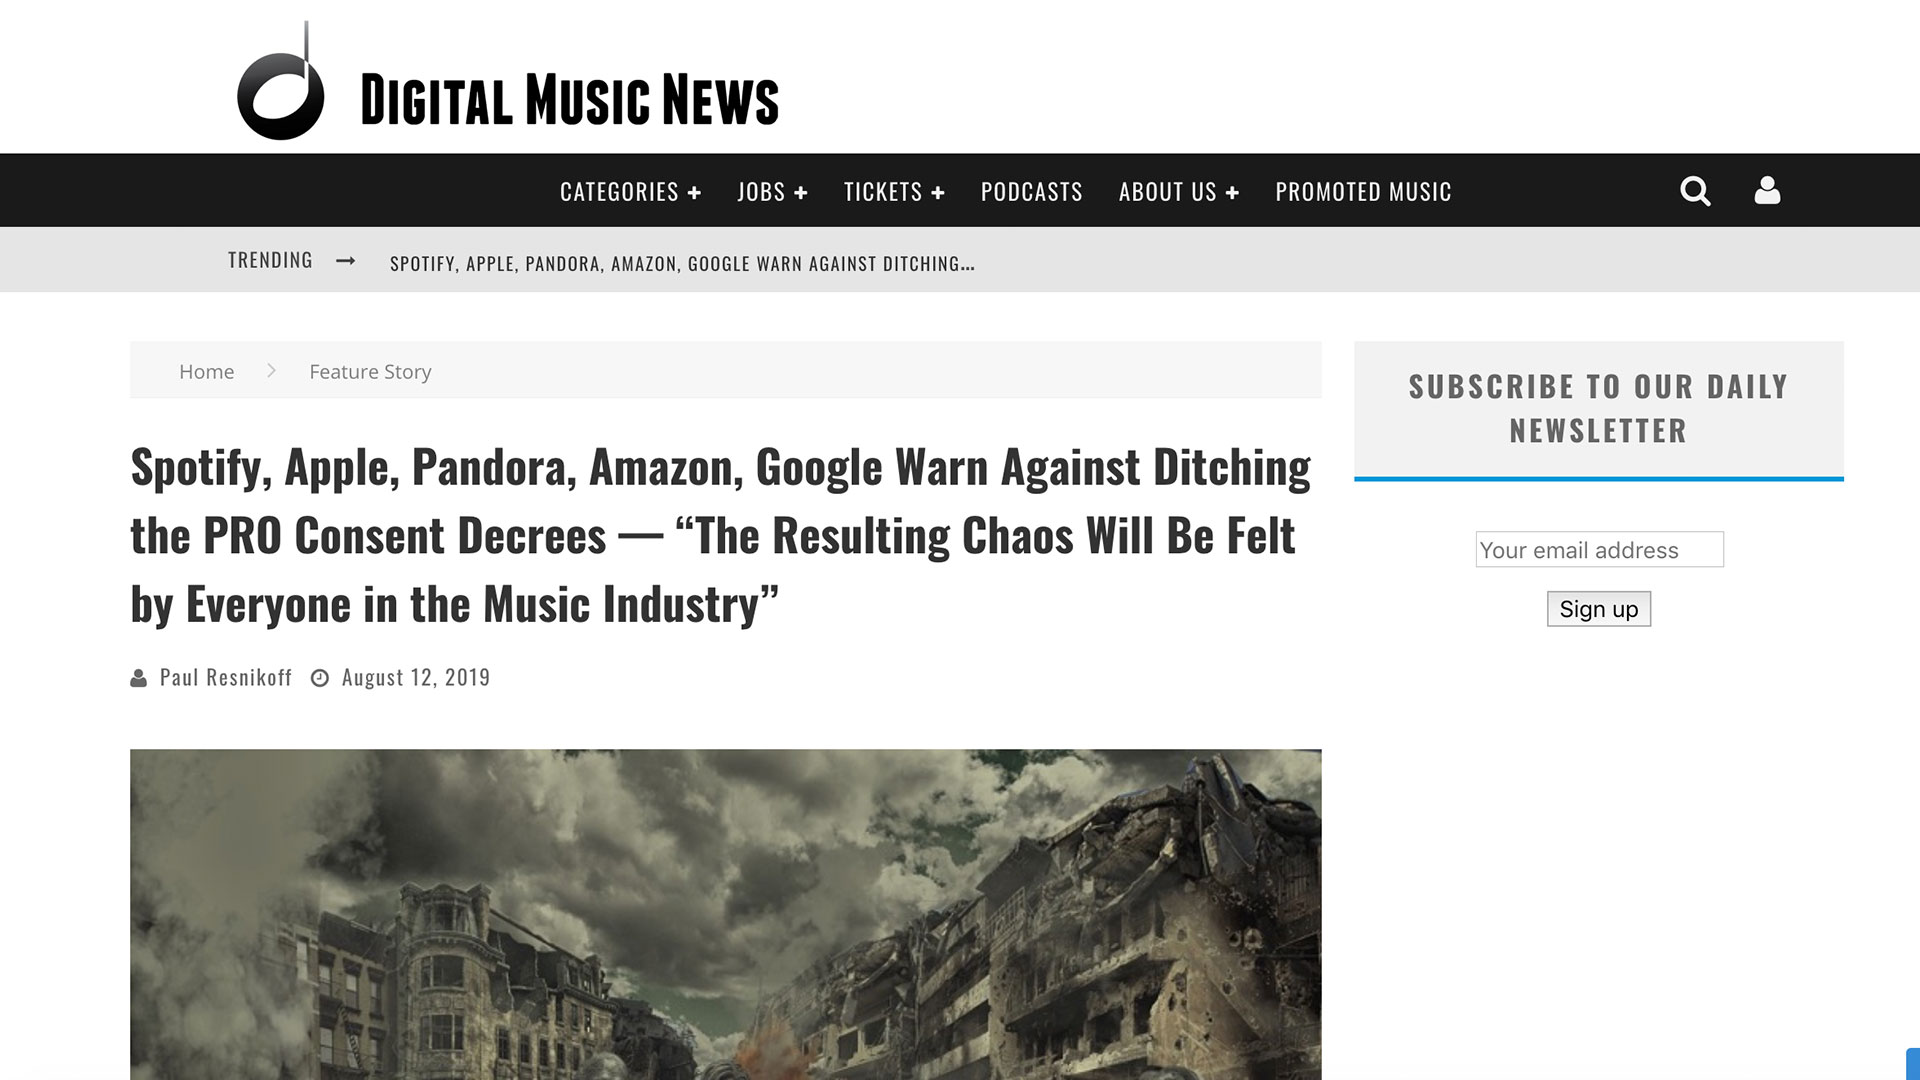 """Fairness Rocks News Spotify, Apple, Pandora, Amazon, Google Warn Against Ditching the PRO Consent Decrees — """"The Resulting Chaos Will Be Felt by Everyone in the Music Industry"""""""